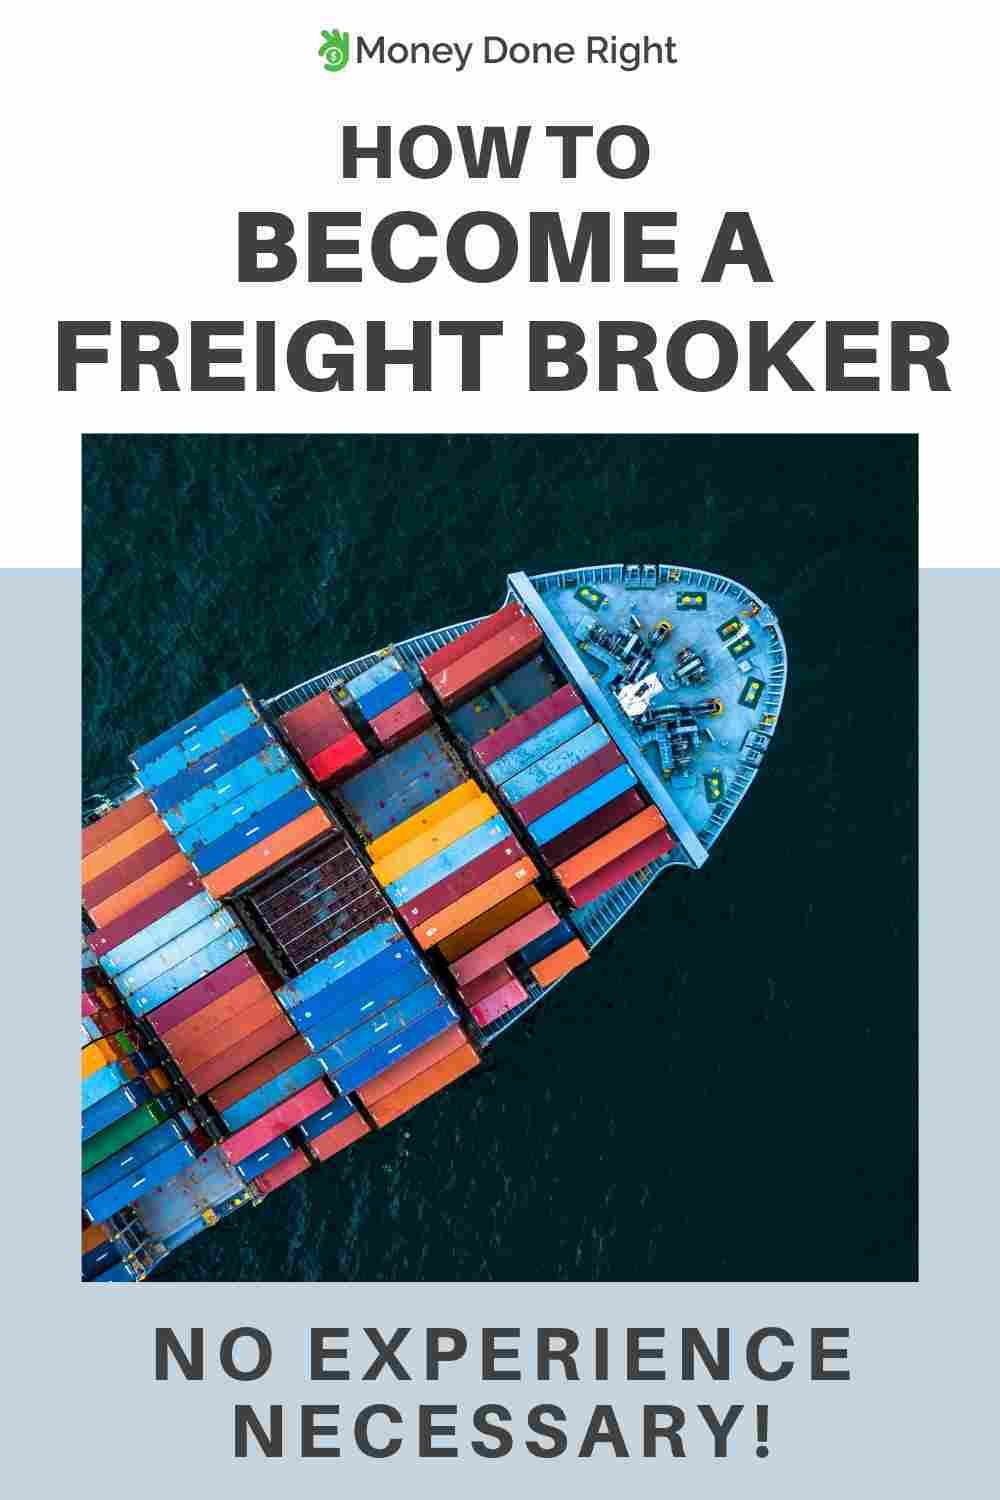 How to a Freight Broker With No Experience